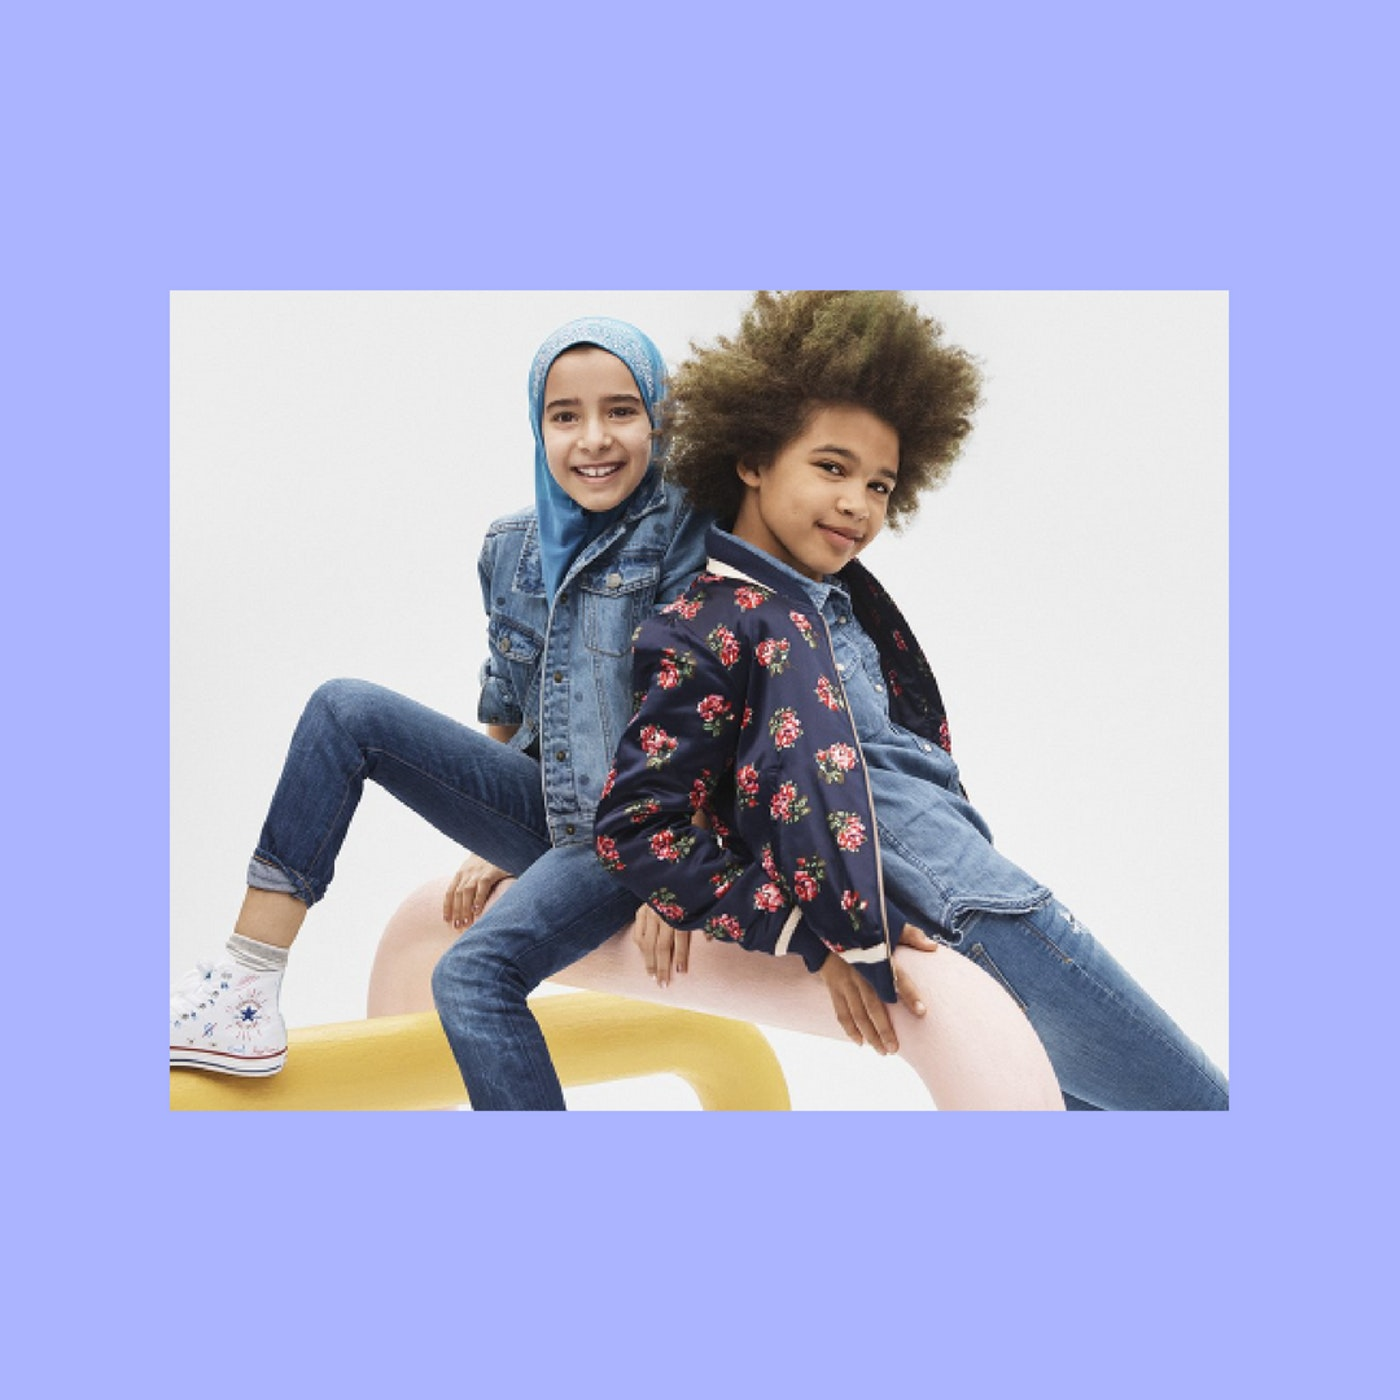 A Petition Has Started in France Calling the Gap Ad a Sexist